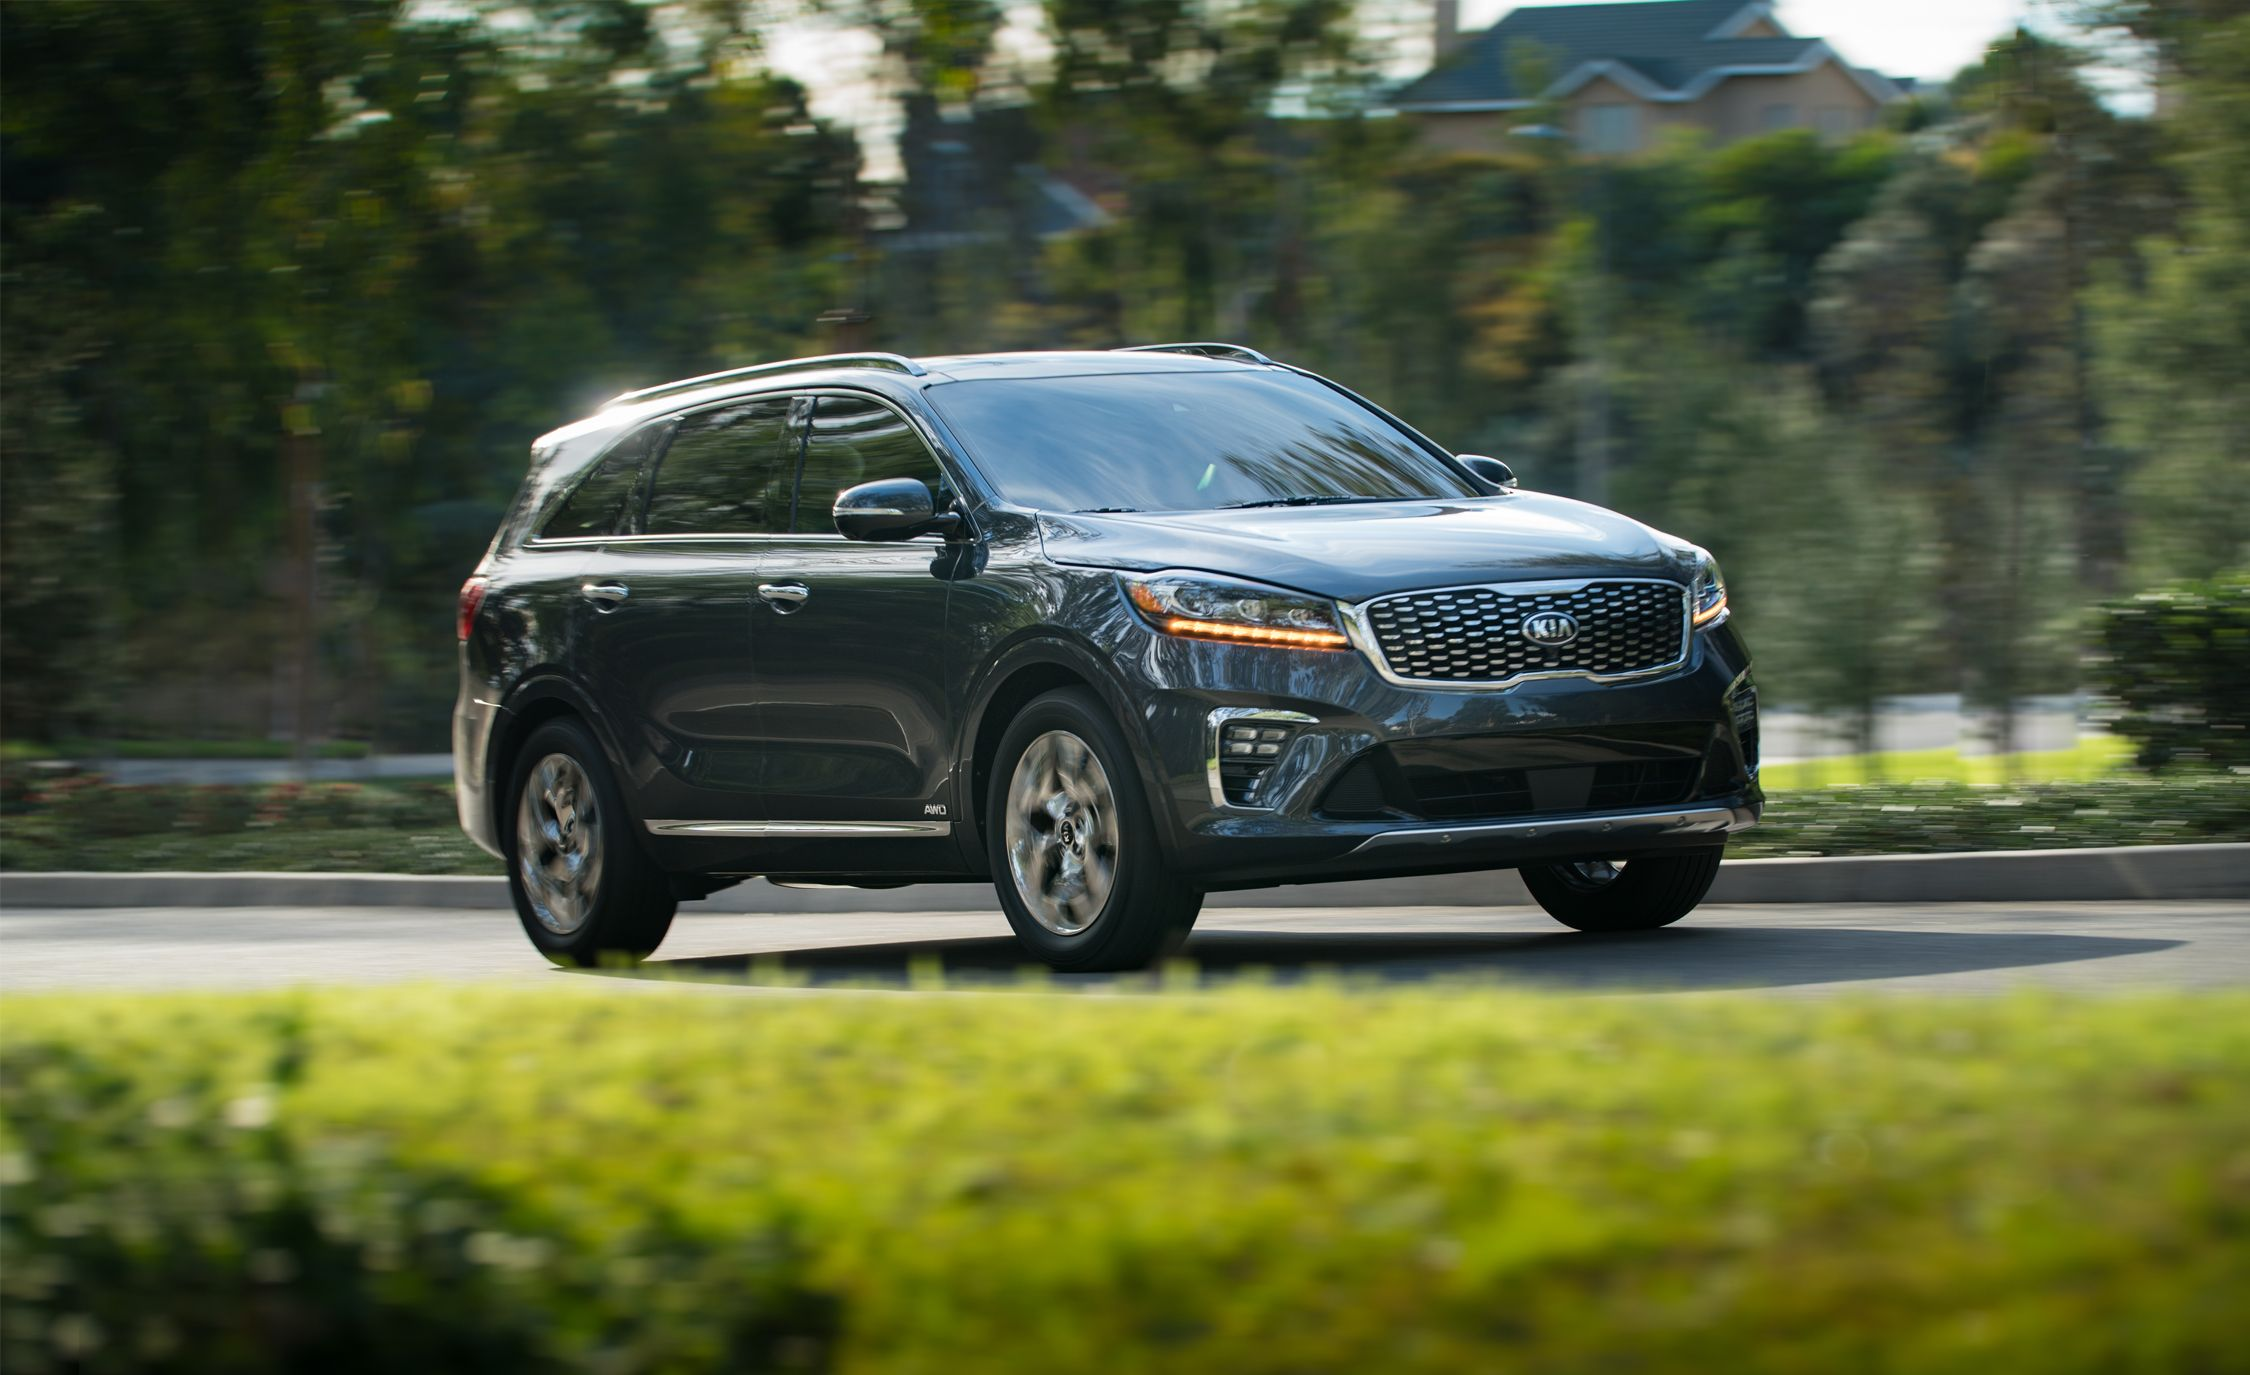 Kia Sorento 2018 Interior >> 2019 Kia Sorento First Drive: Updated to Keep Pace | Review | Car and Driver